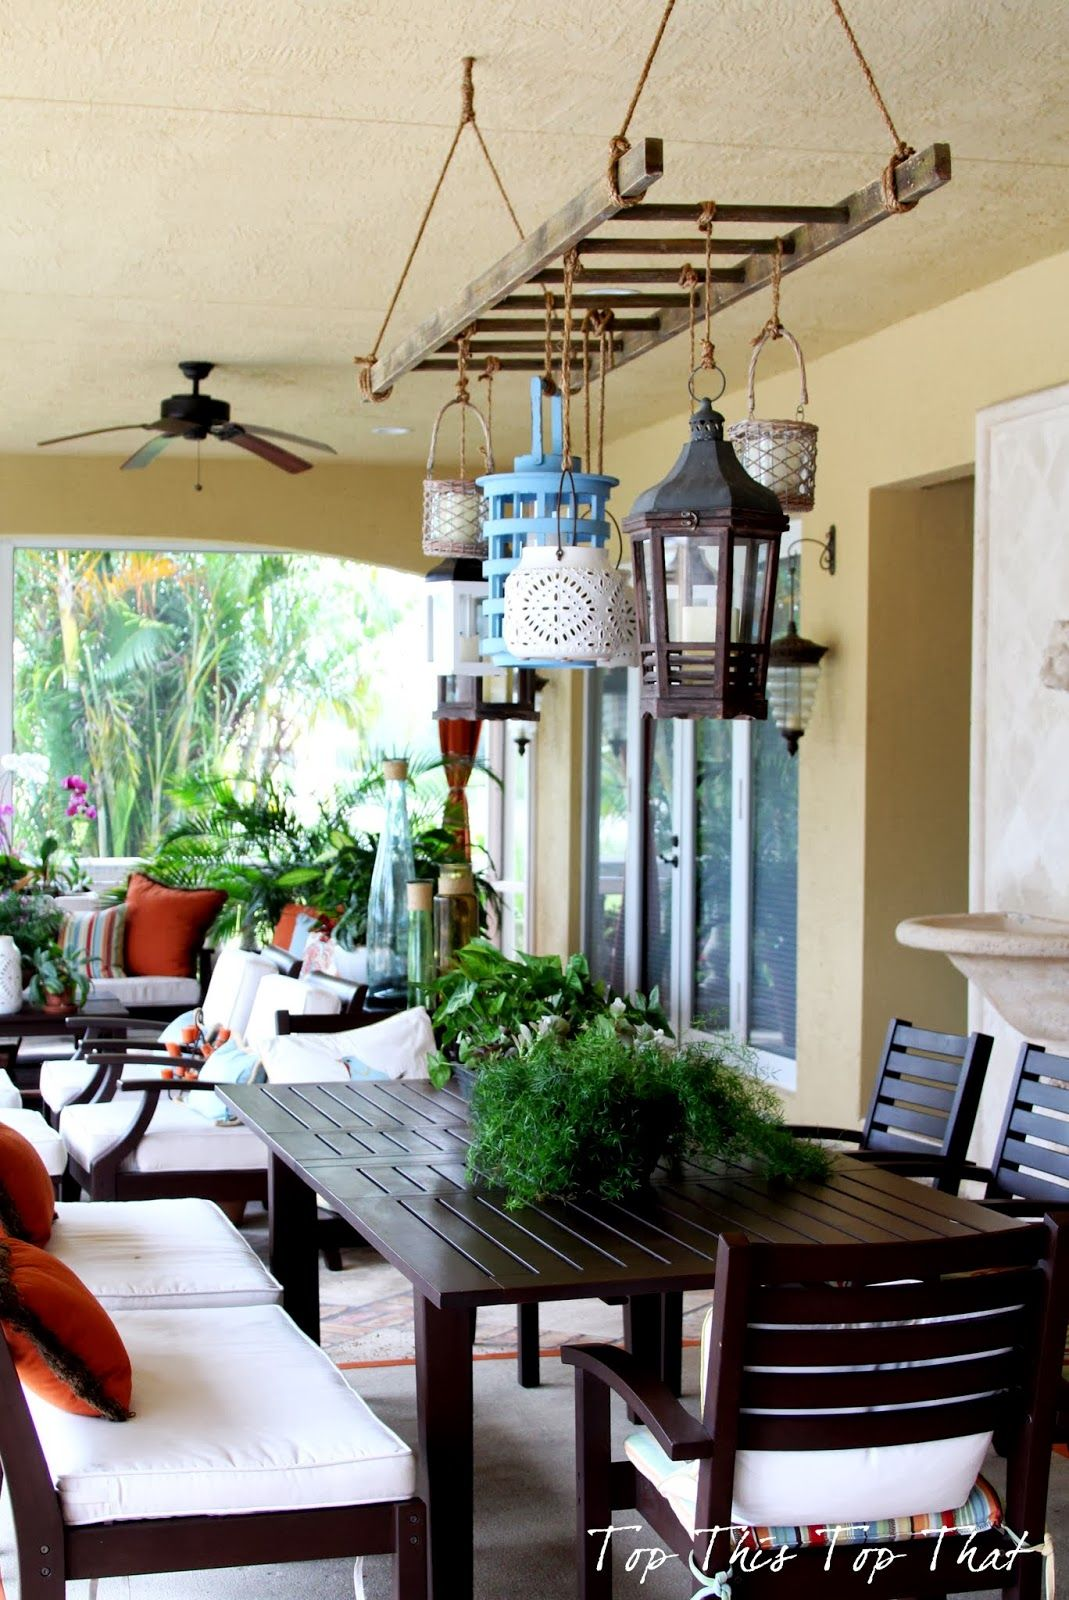 Hanging Patio Decor - Inspiring decor makeovers crafts recipes